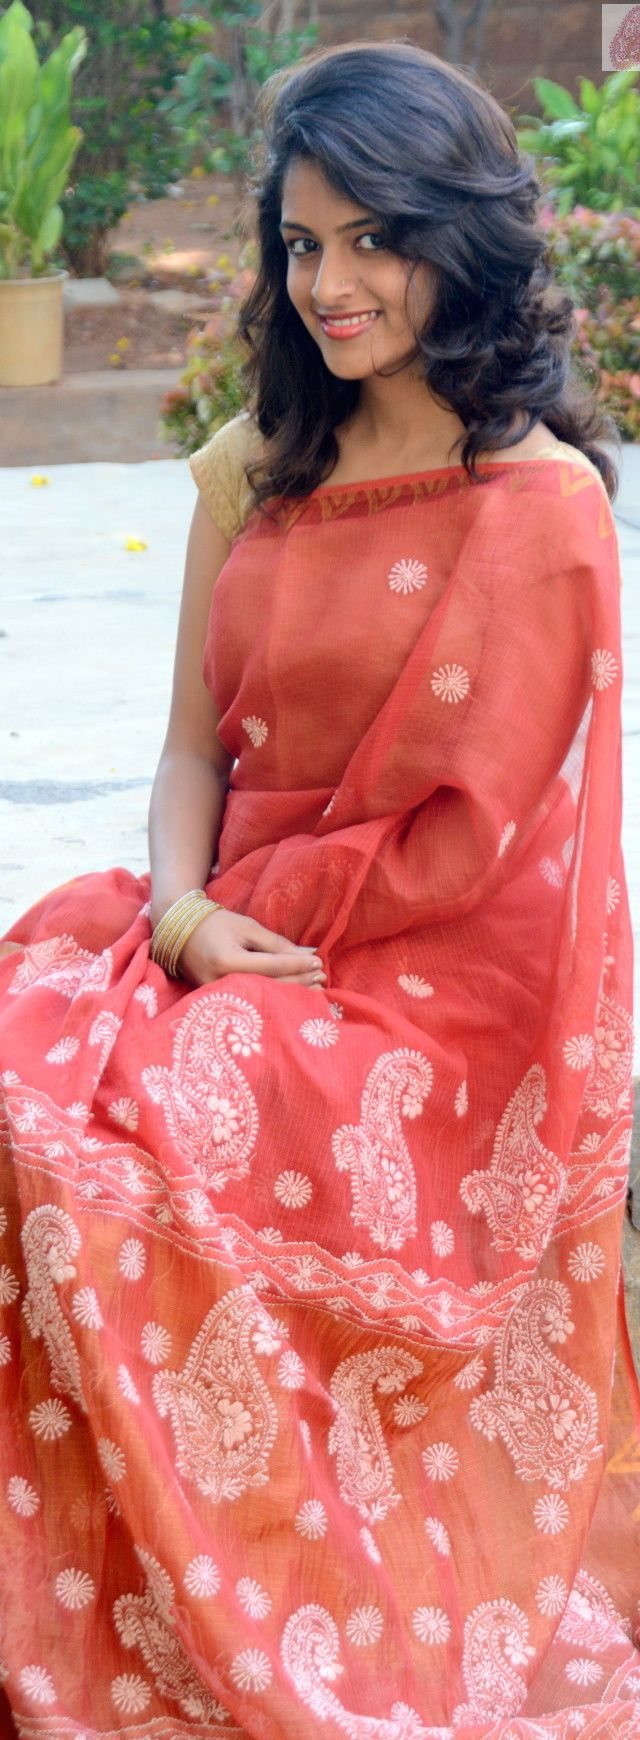 Hand embroidered Lucknow chikankari Saree. Myne by Aanchal - pin by @webjournal